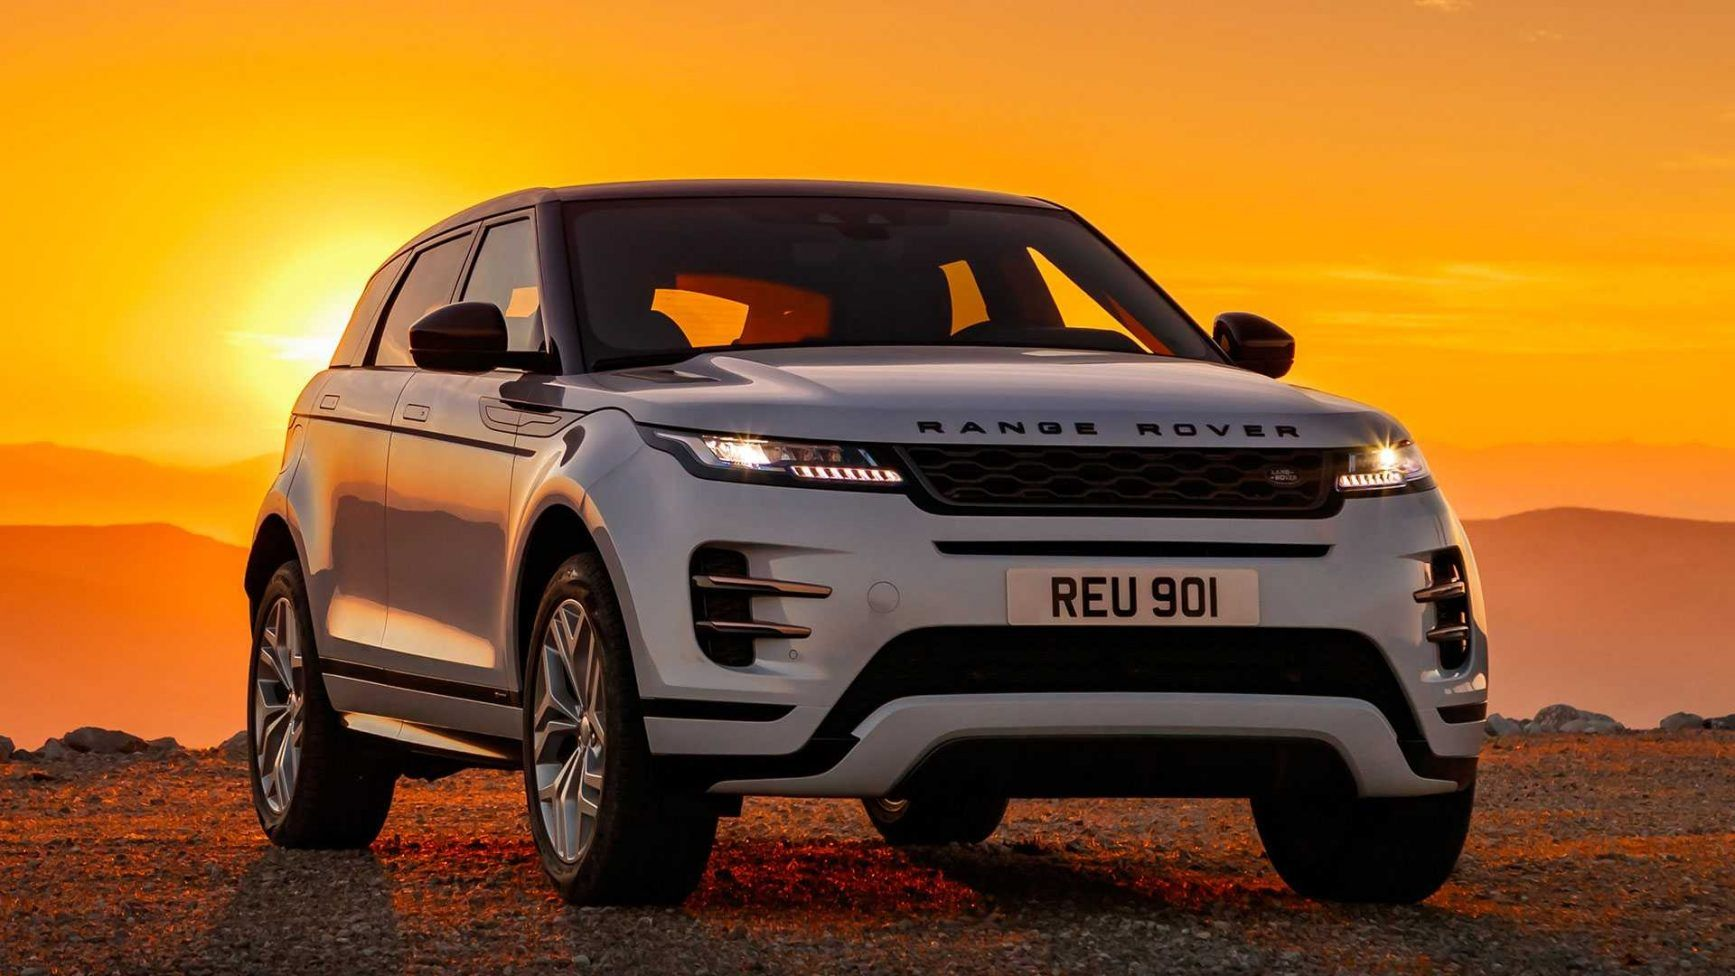 2020 Range Rover Evoque Review, Engine, Price, Release